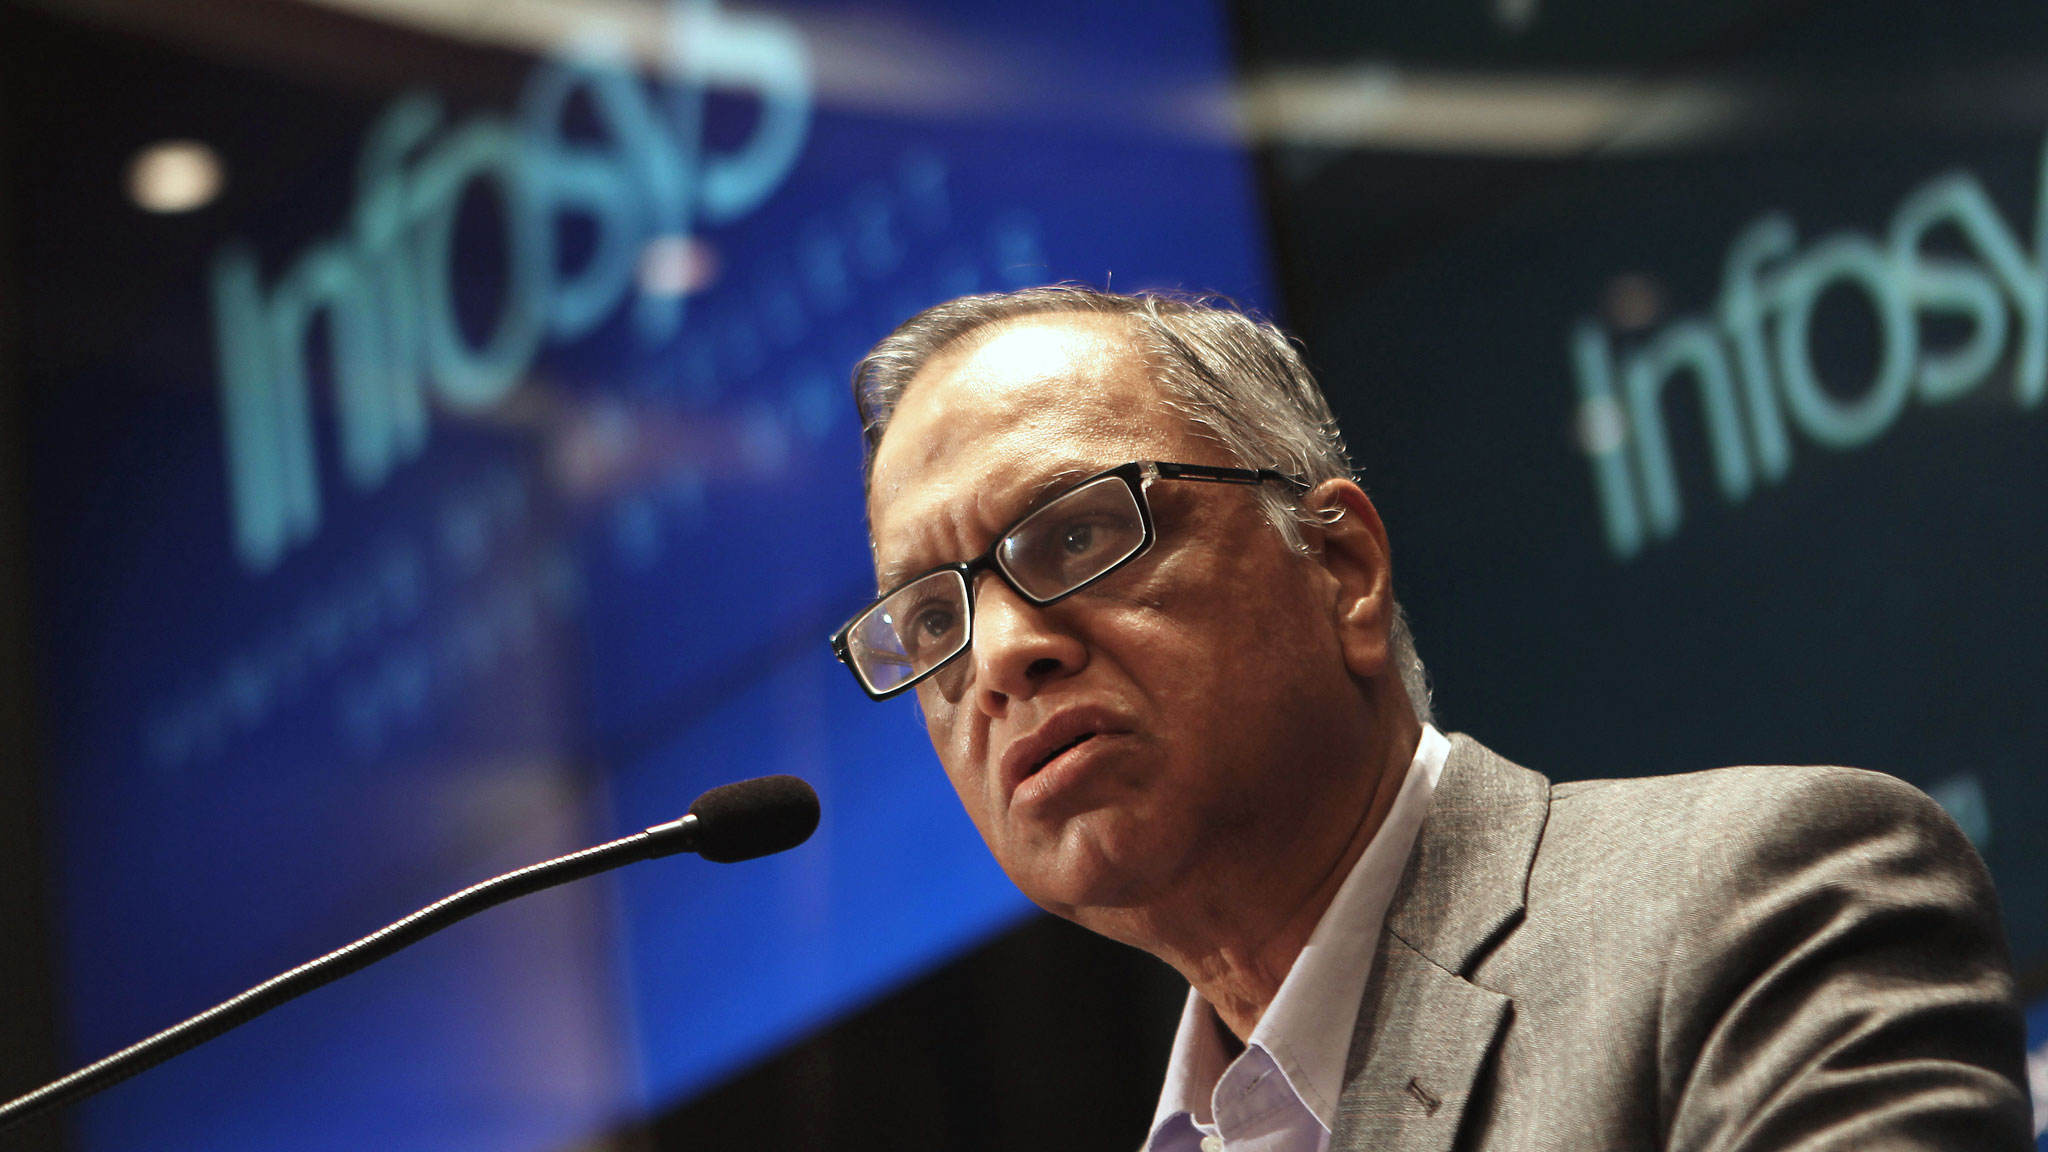 Founding member of Infosys, N.R. Narayana Murthy, speaks at a press conference at the company's headquarter in Bangalore on June 1, 2013. Infosys on reappointed co-founder N.R. Narayana Murthy to lead the Indian outsourcing giant two years after he retired, as the company grapples with weak earnings and falling market share. AFP PHOTO/ Manjunath KIRAN